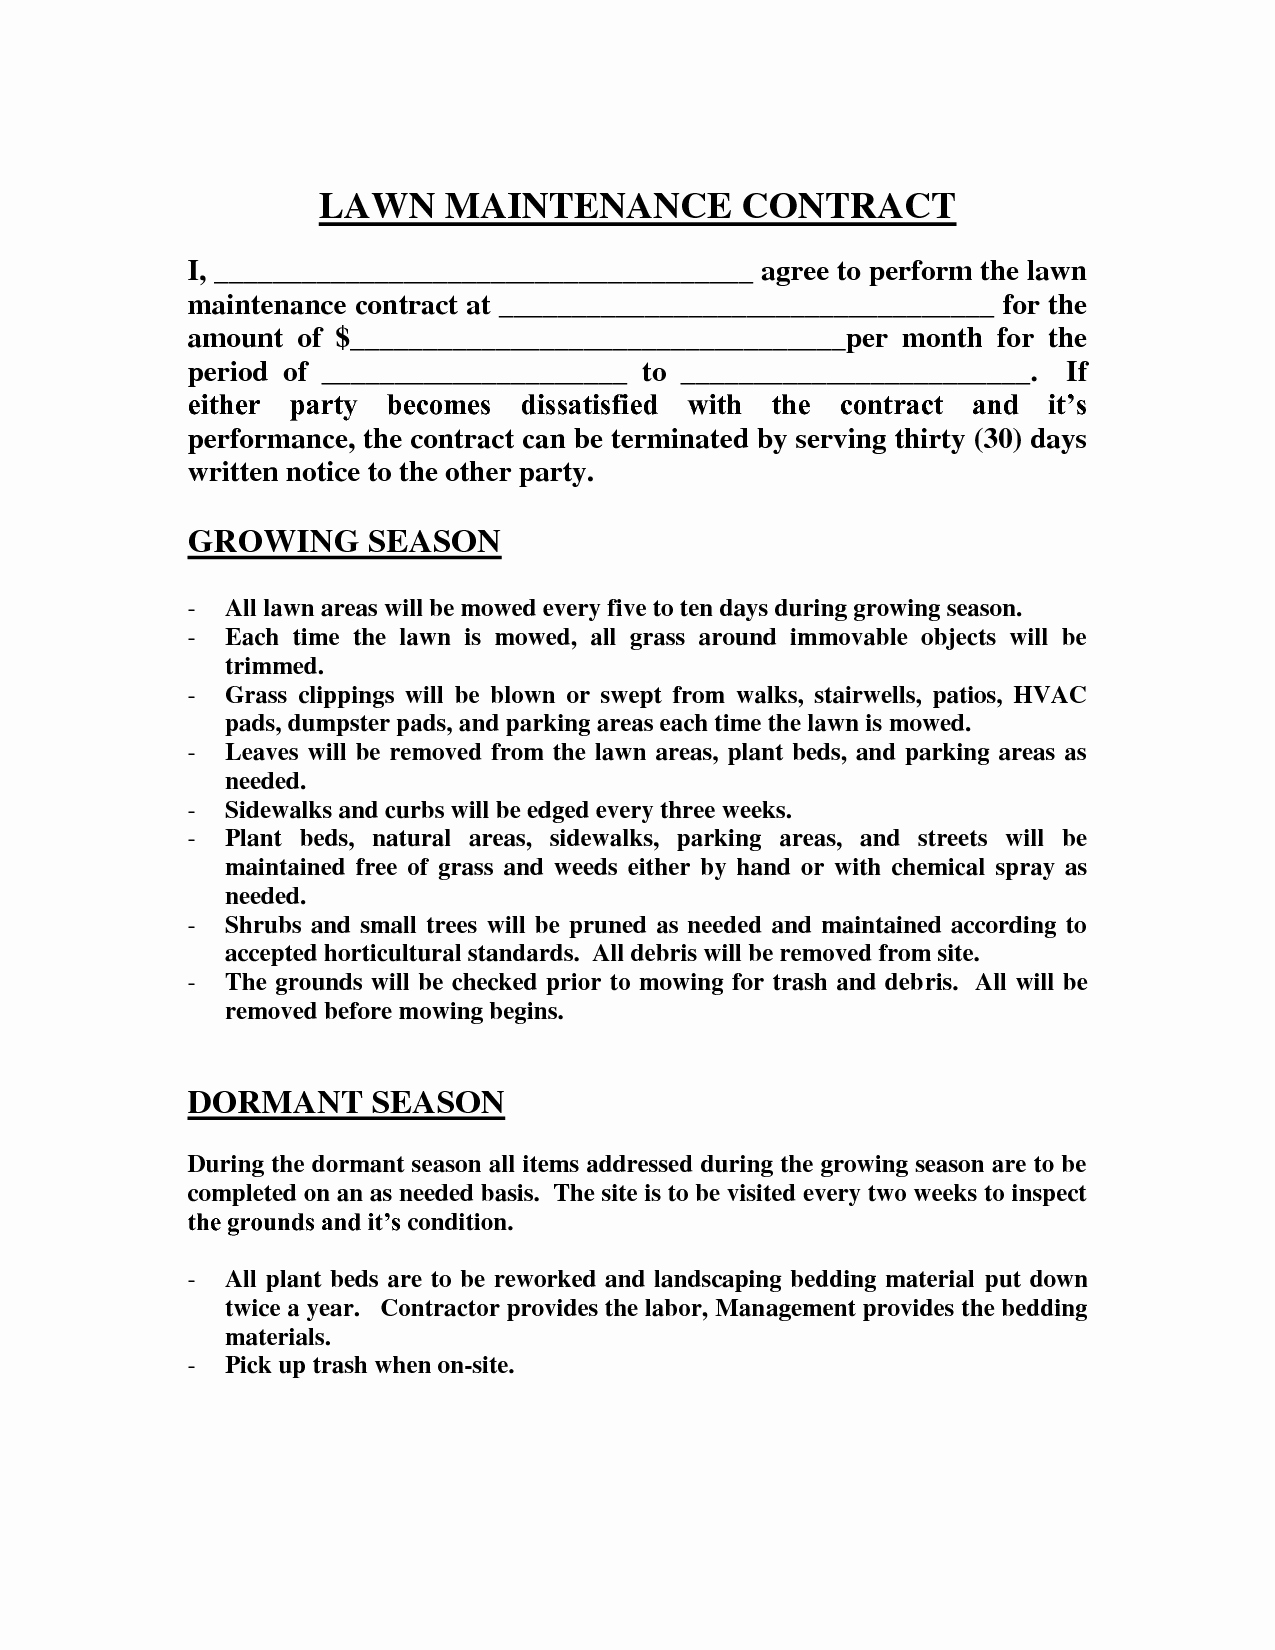 Contract Lawn Care Contract Template Lawn Care Contract